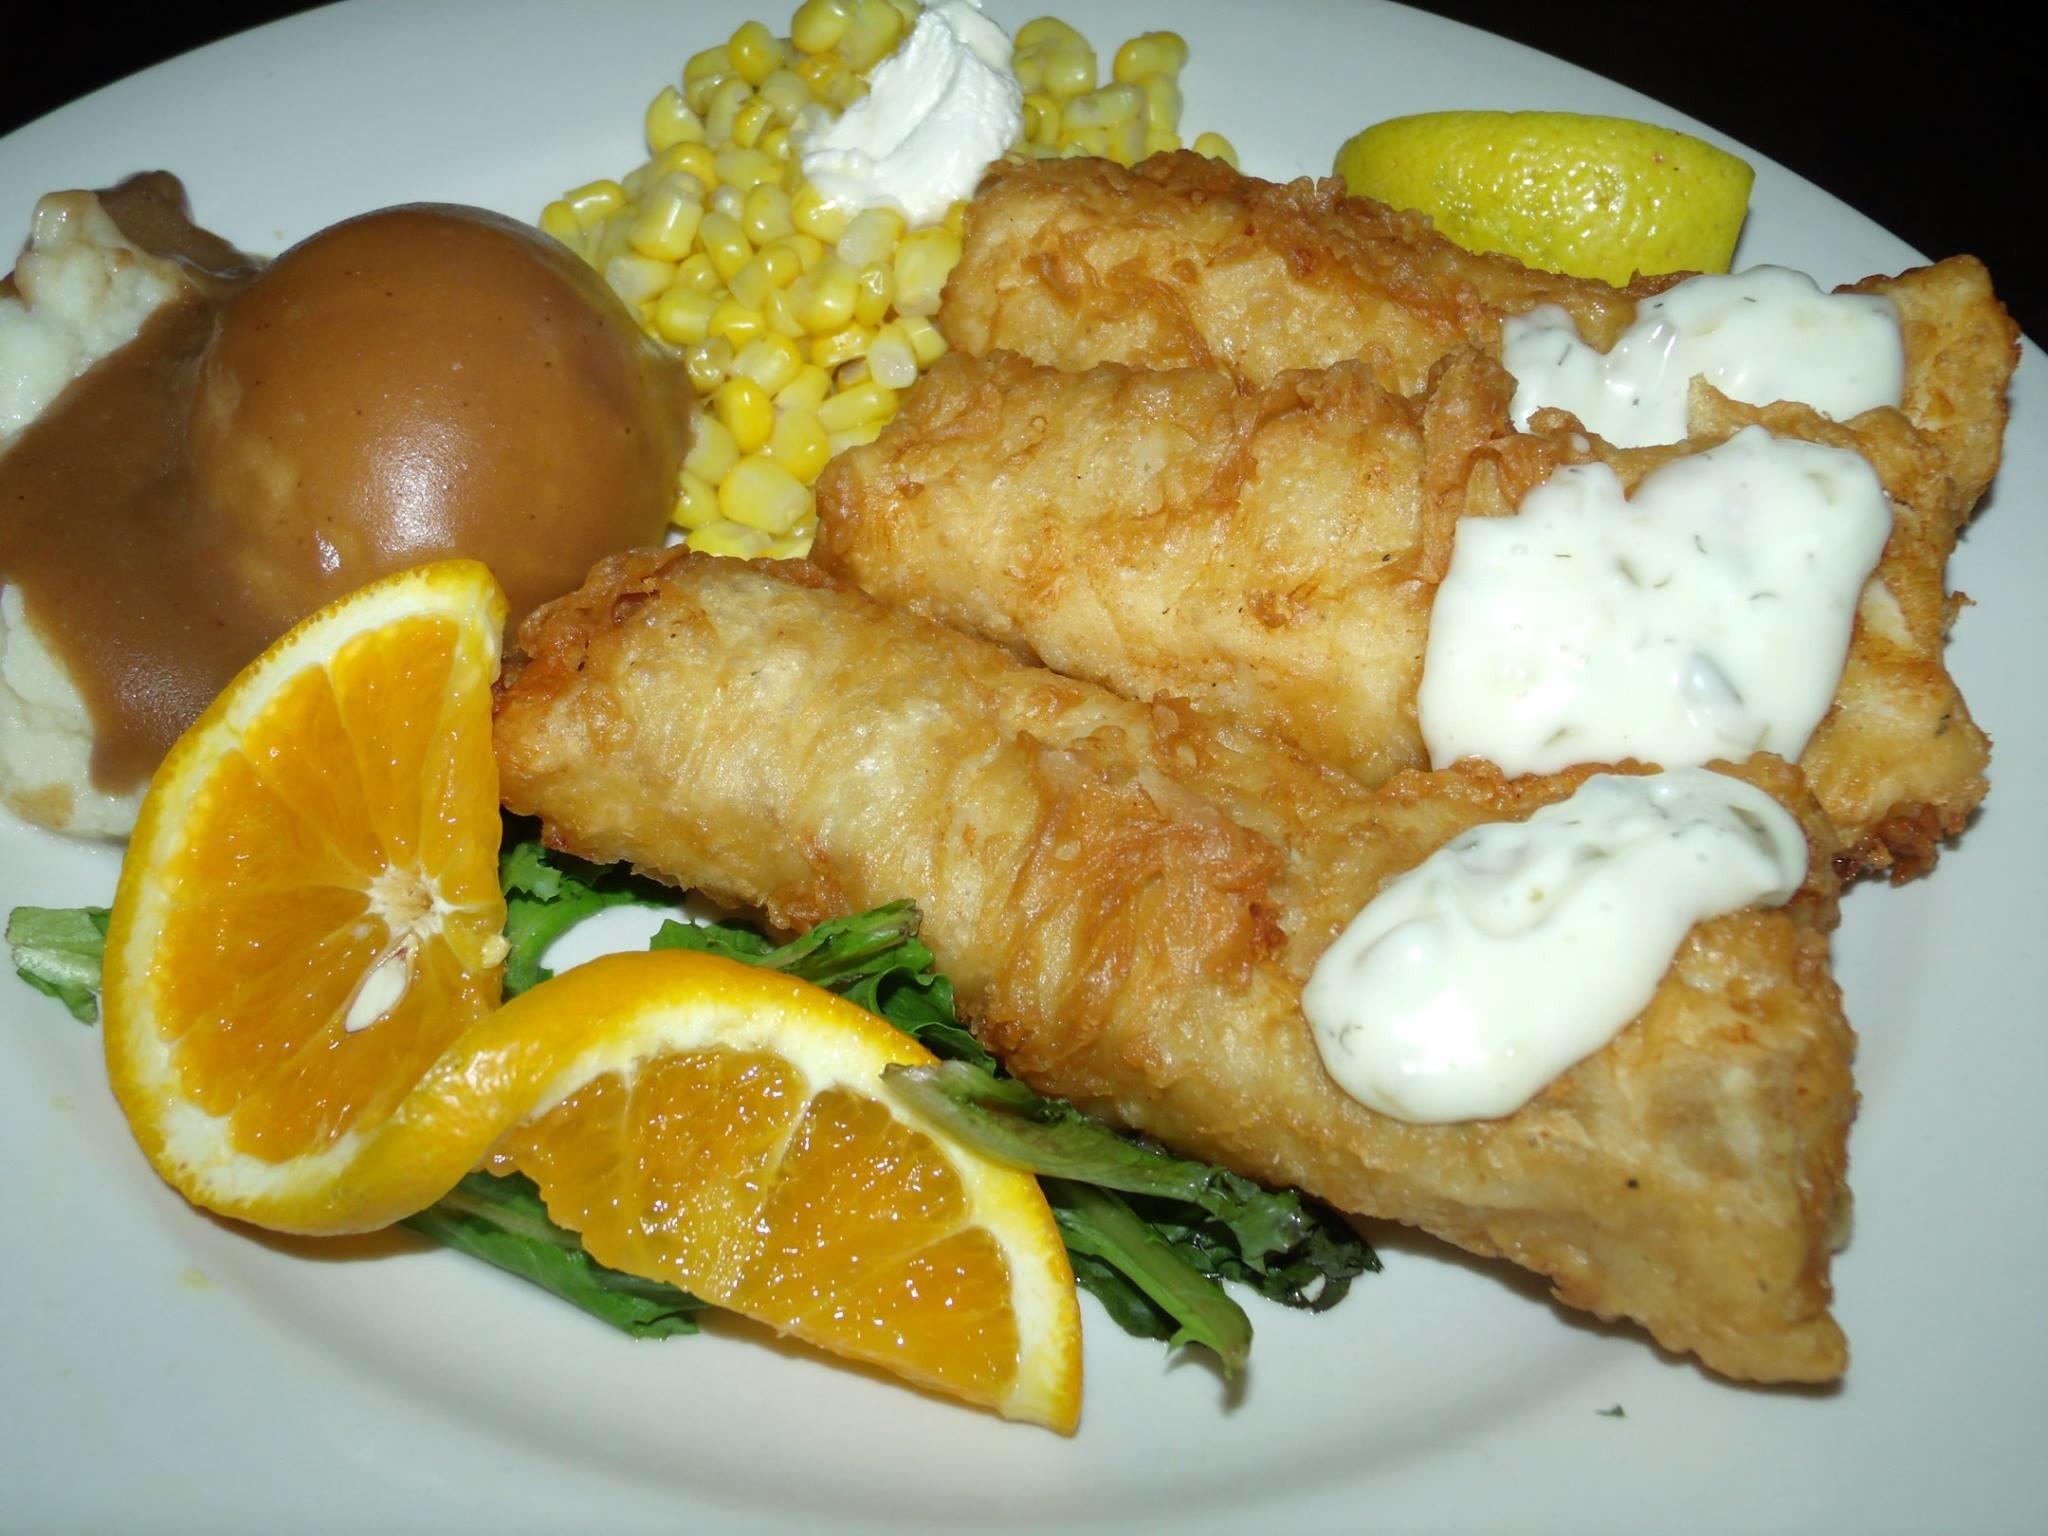 Citrus cafe janesville wi business profile for Best fish fry in wisconsin